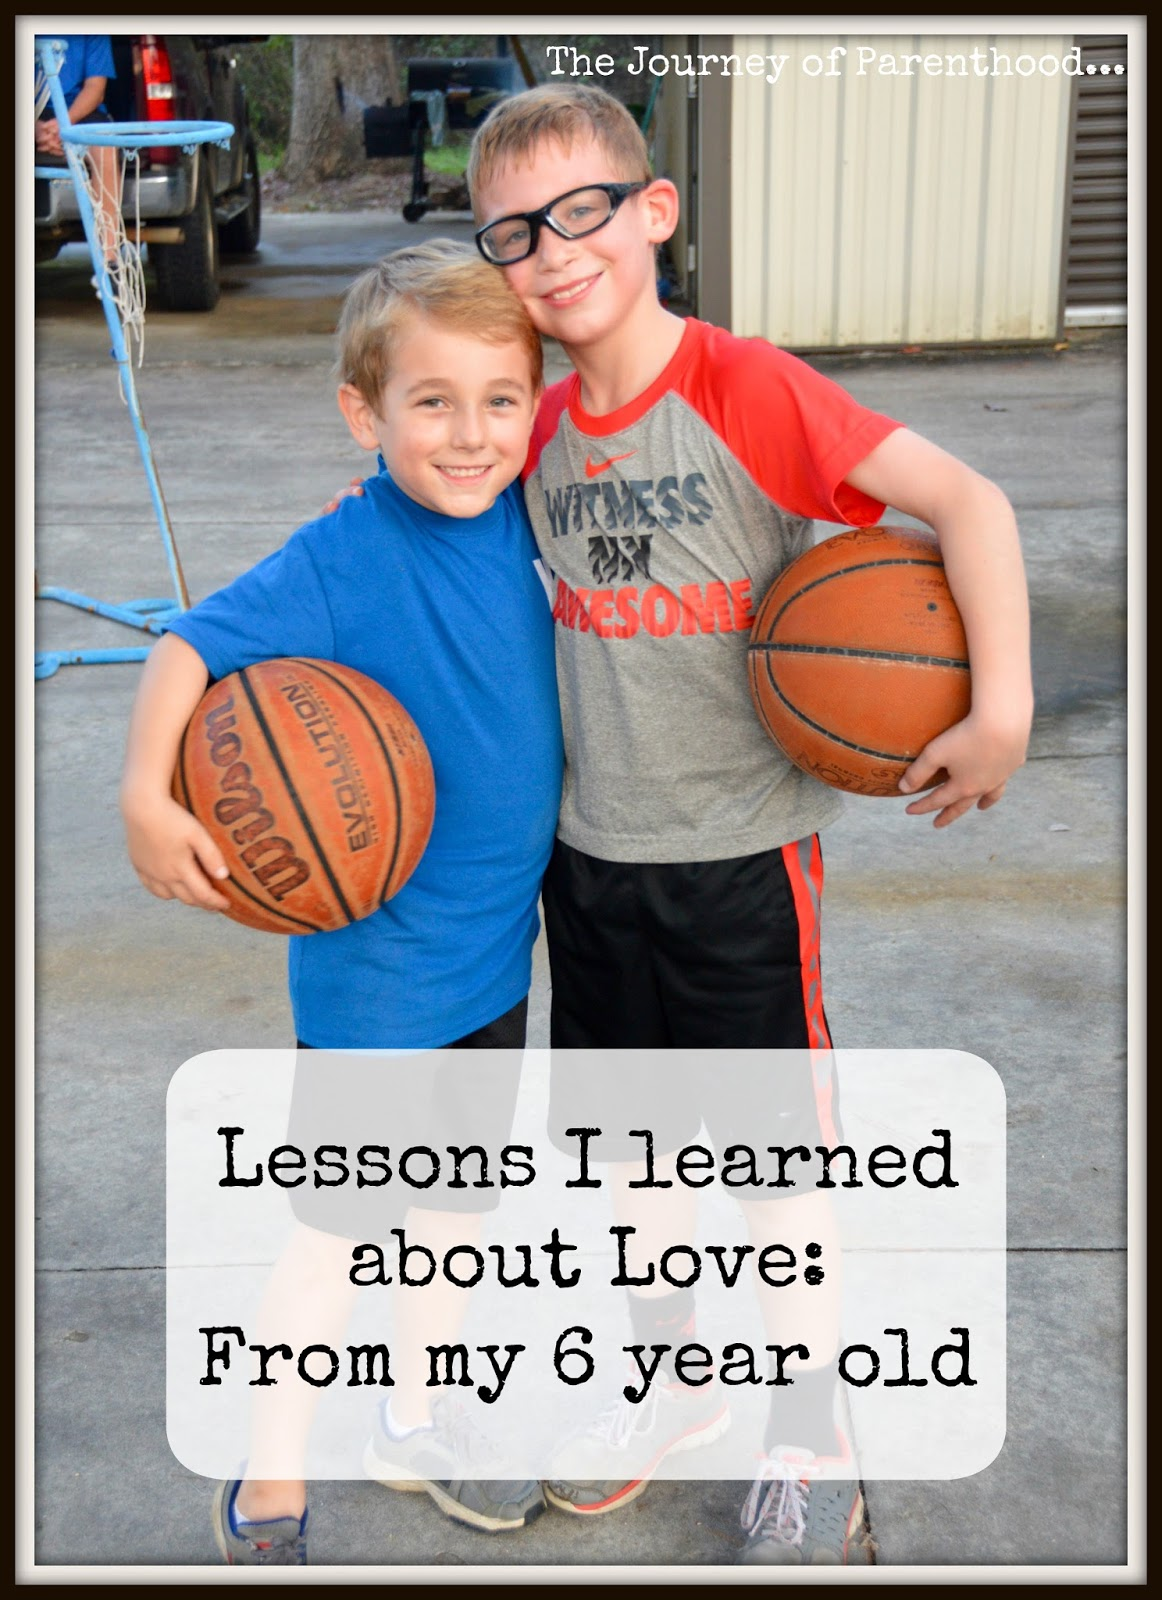 Lessons I learned about Love: From my 6 year old